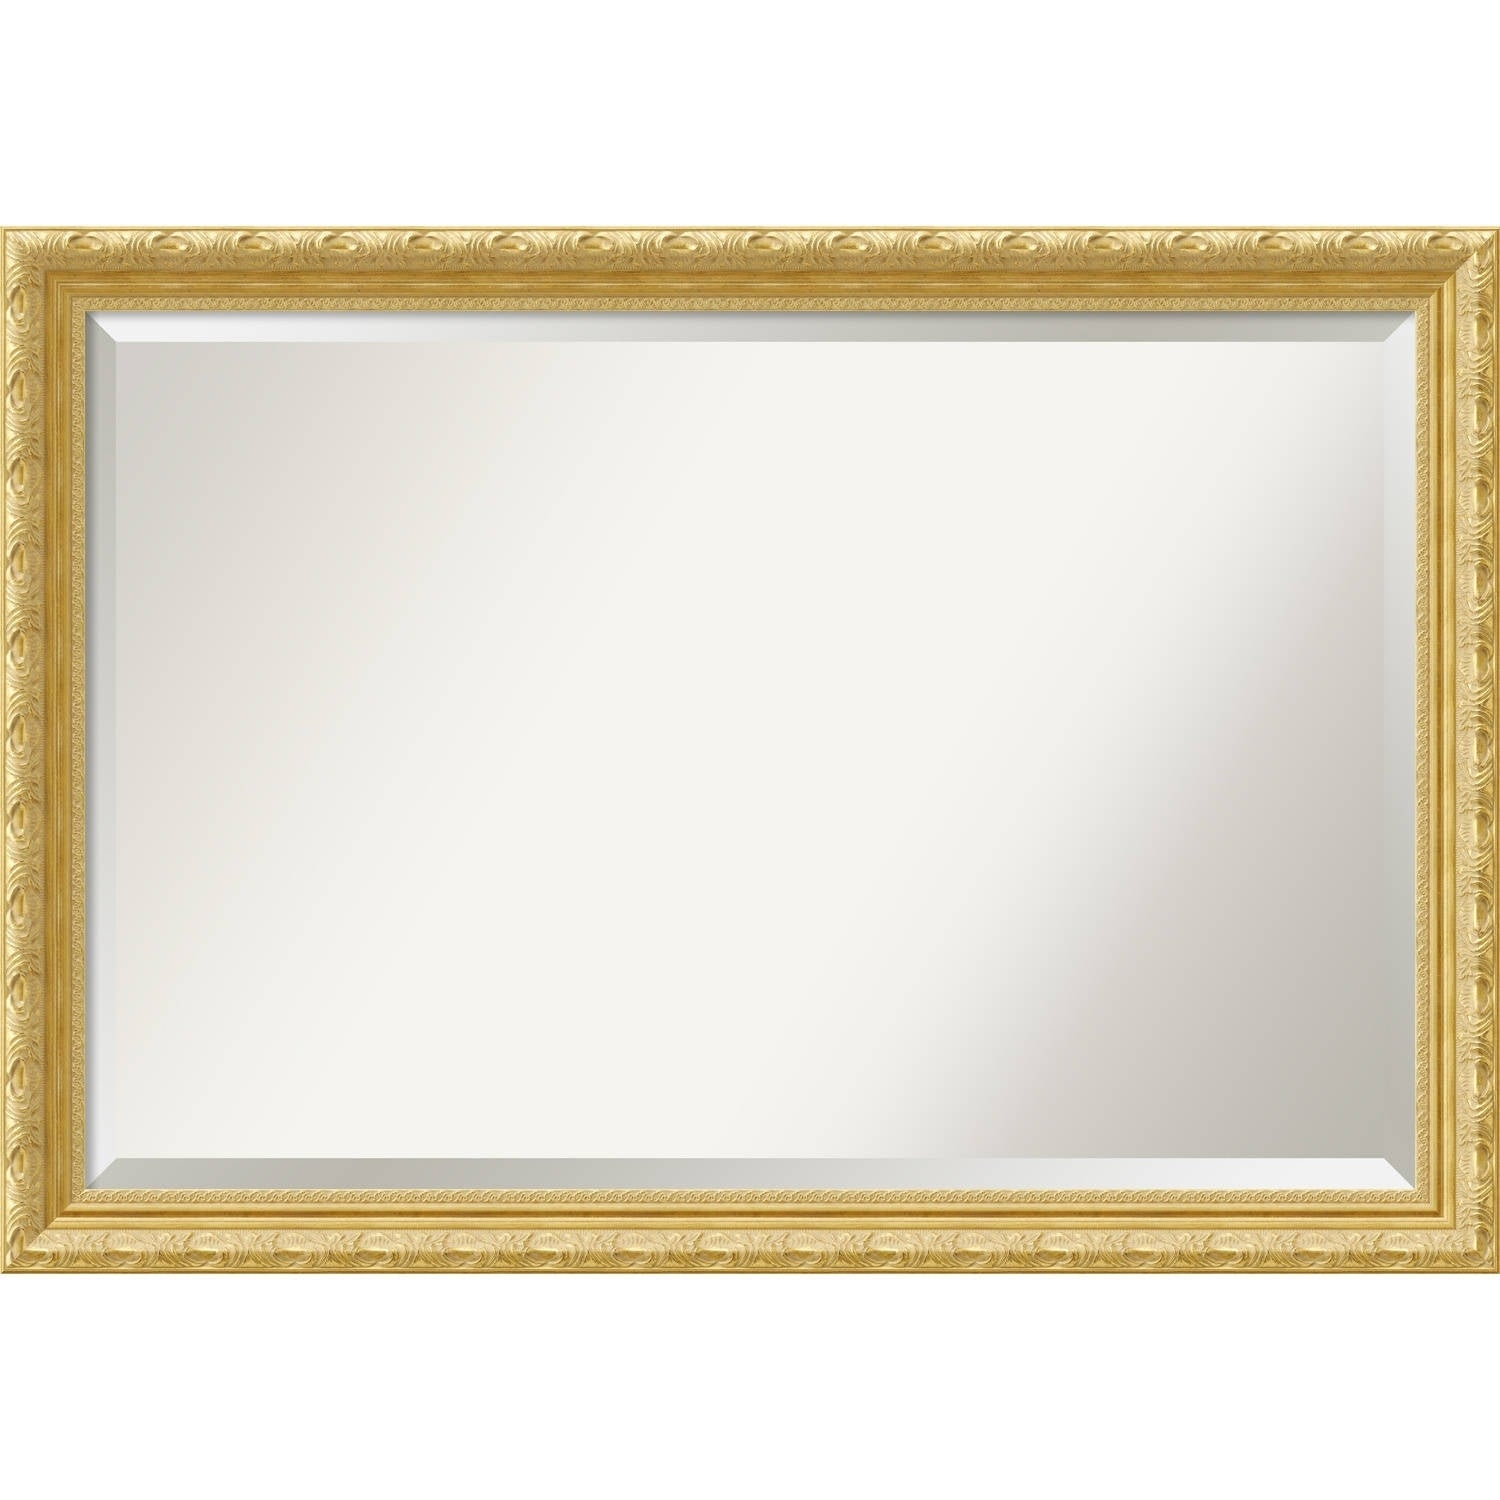 Shop Wall Mirror Extra Large Versailles Gold 40 X 28 Inch Extra Large 40 X 28 Inch Overstock 15367211